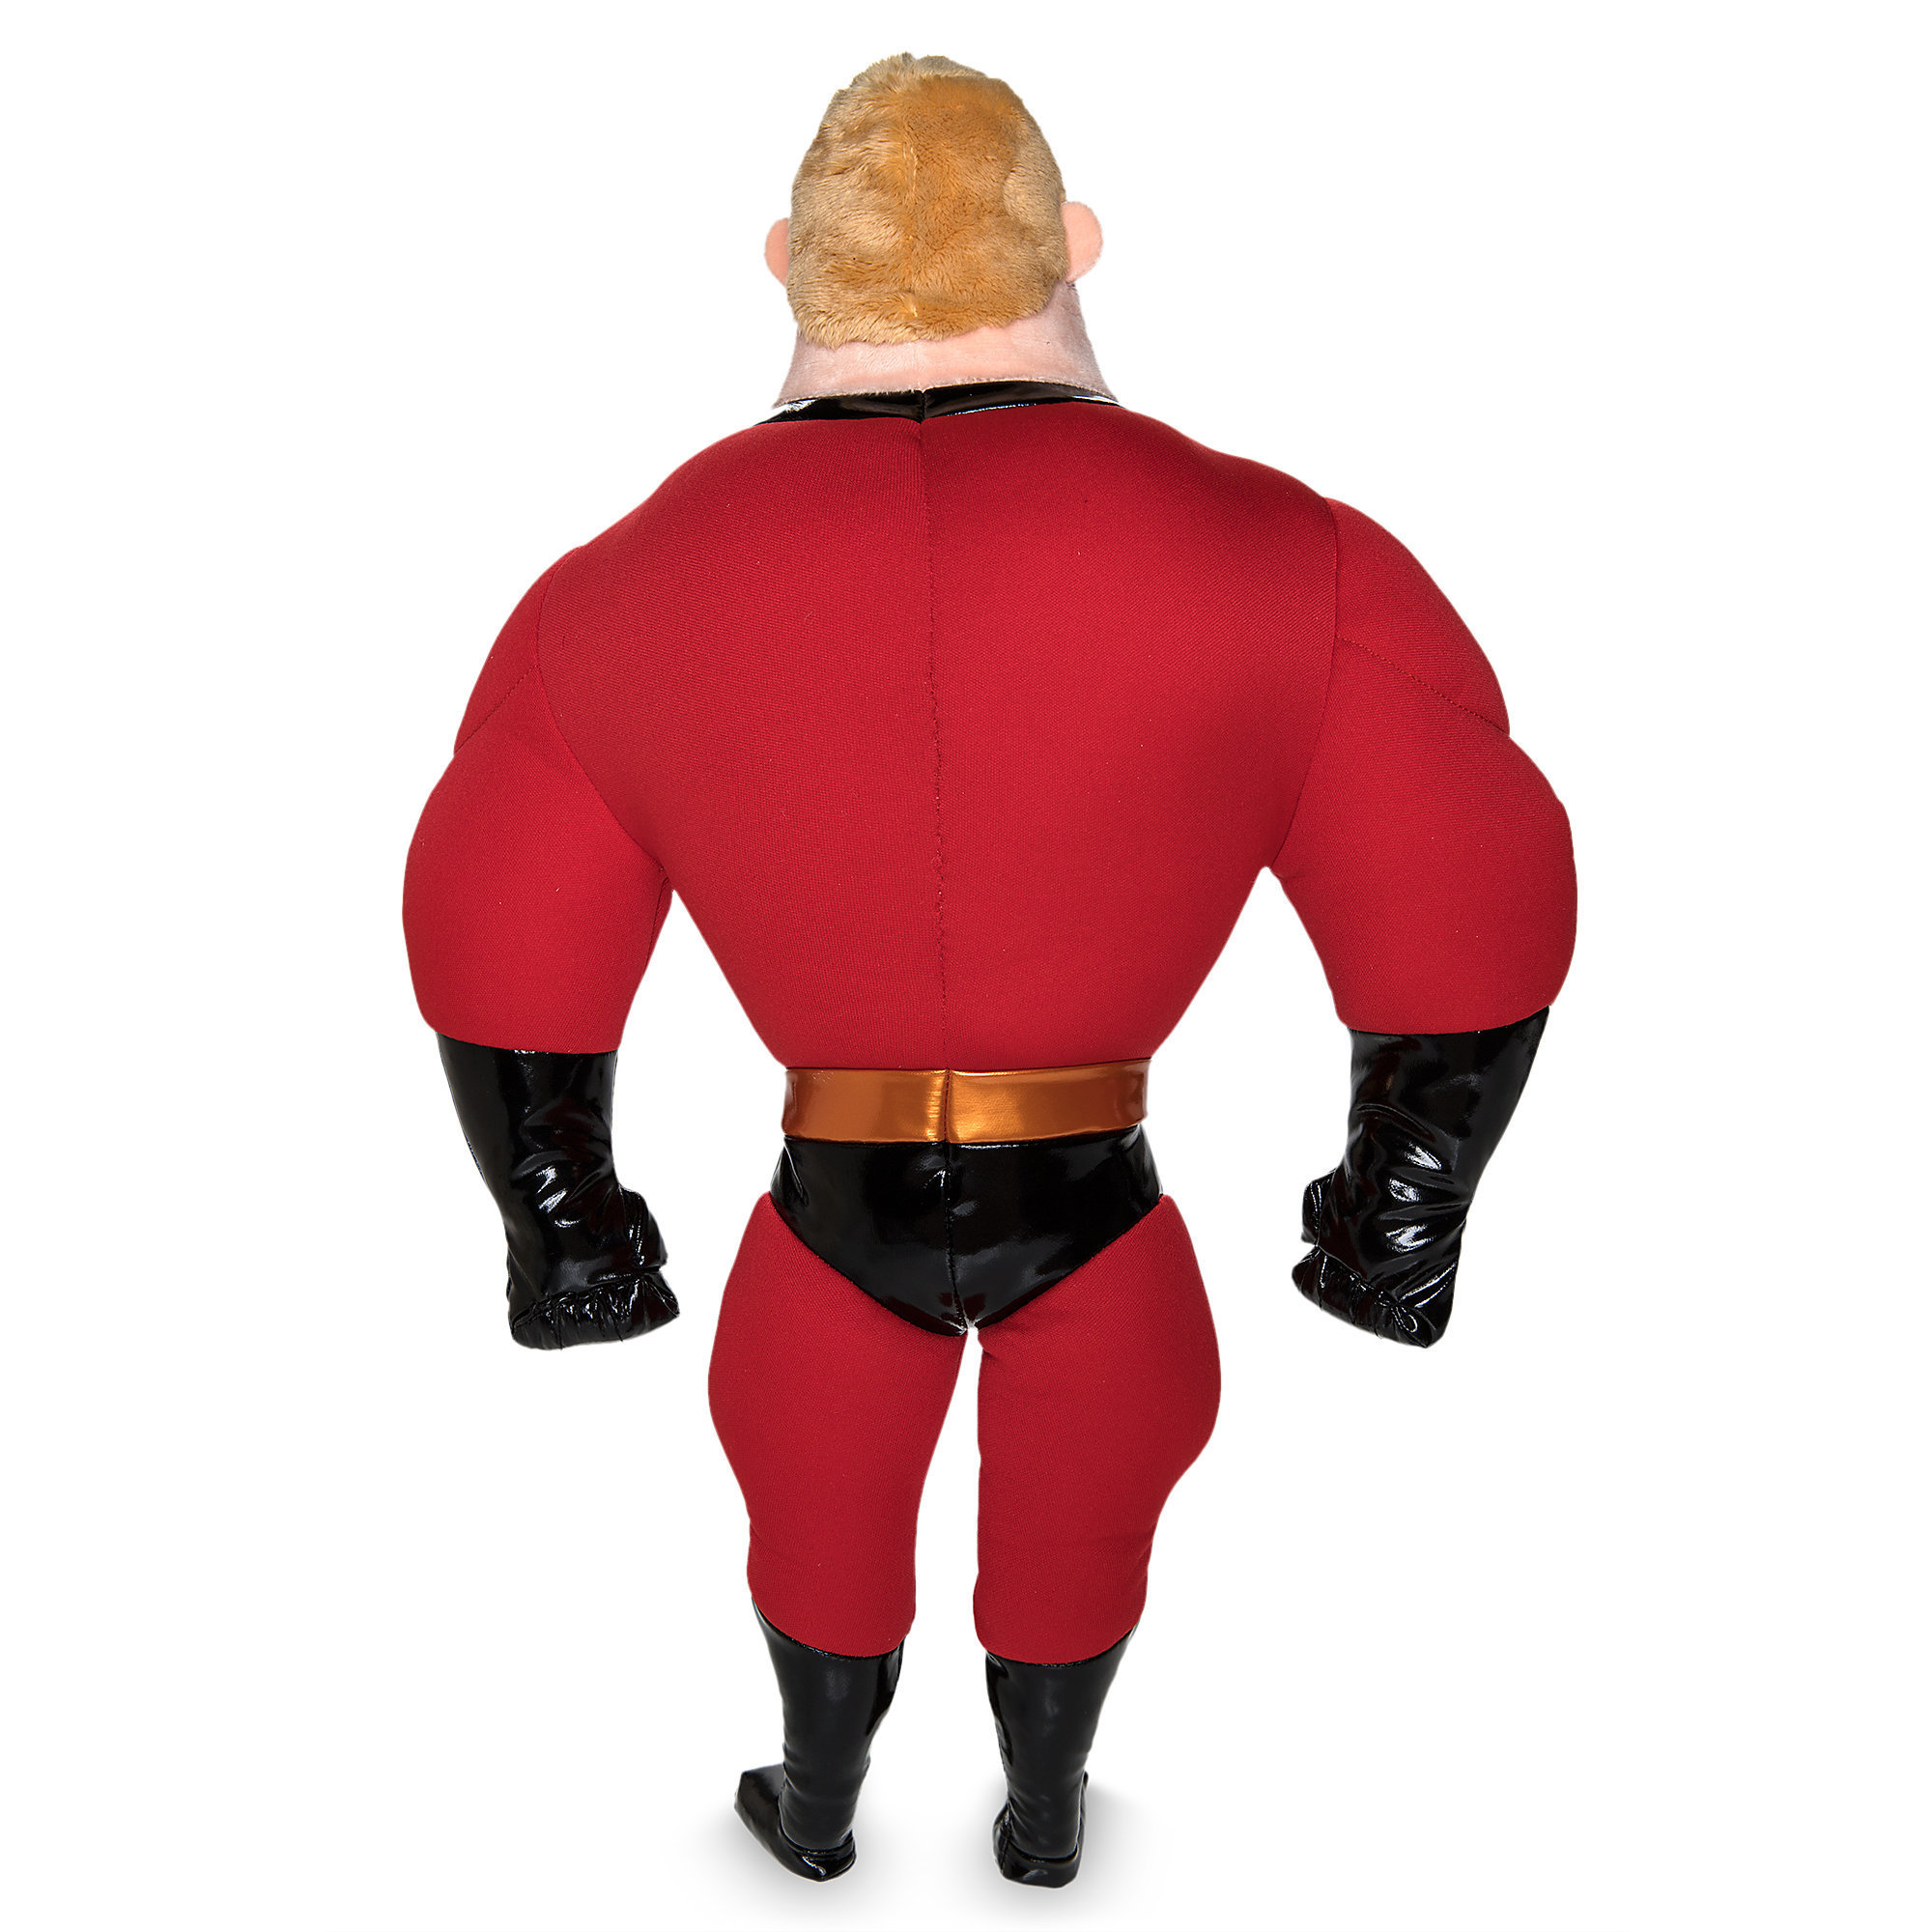 The Incredibles 2 Plush Mr Incredible Doll